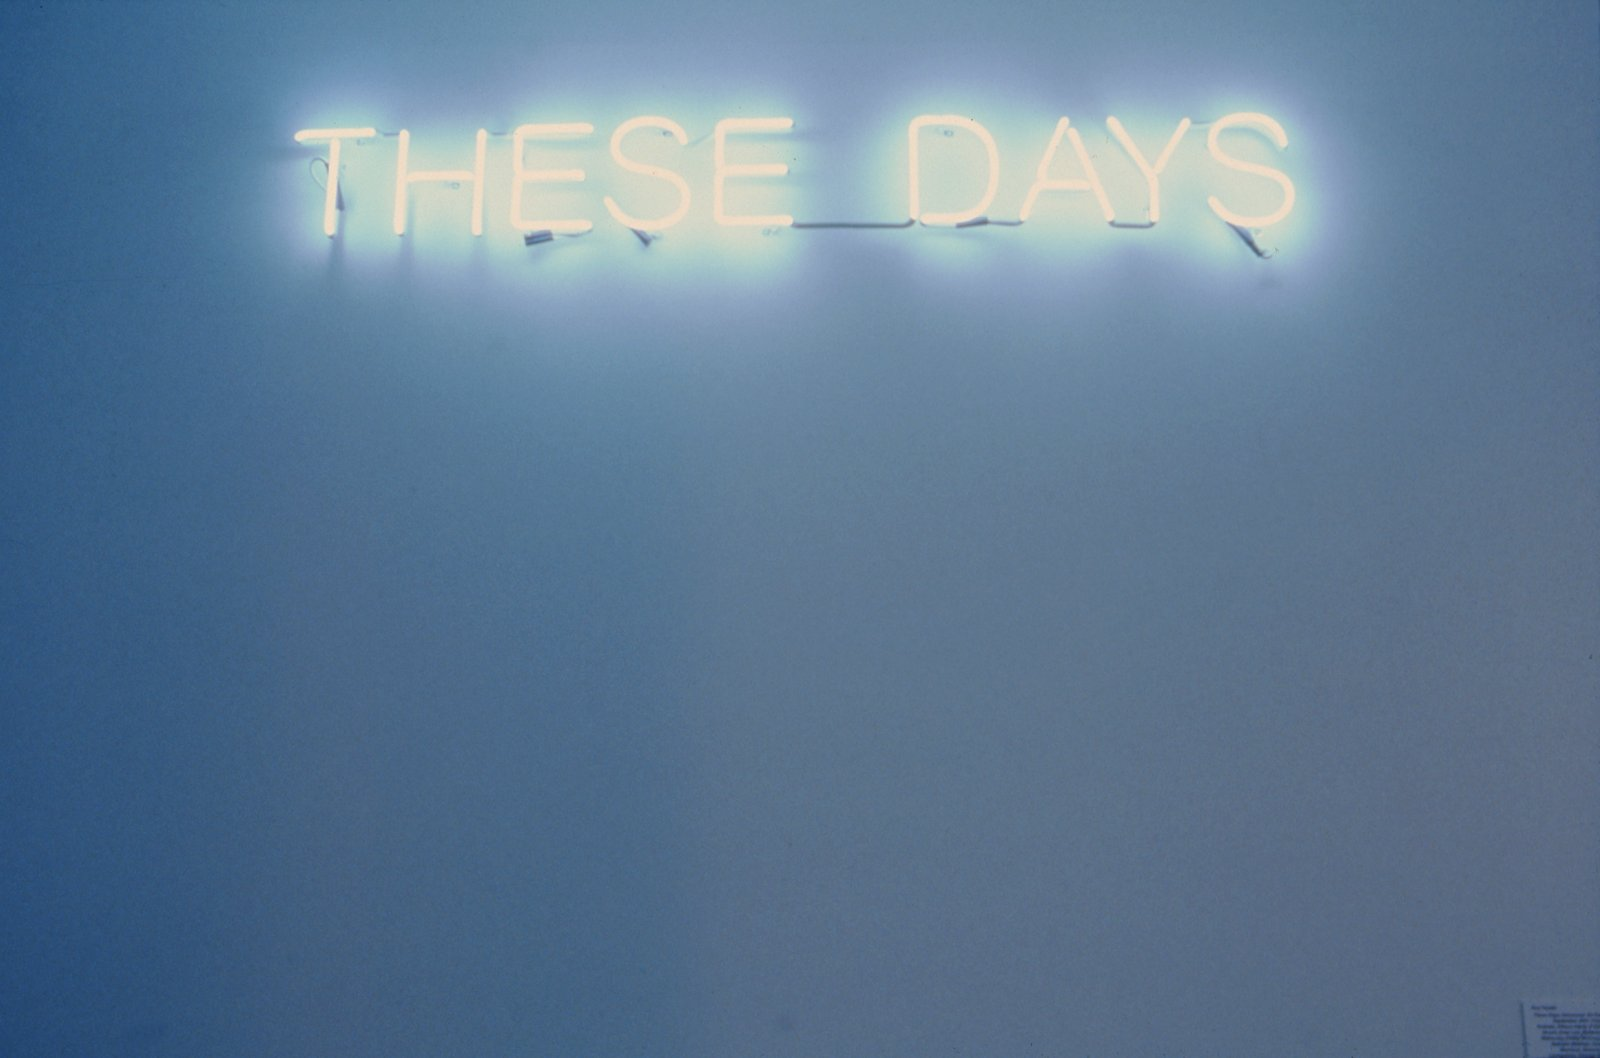 Ron Terada, These Days, 2002, neon sign, 9 x 69 in. (22 x 174 cm)